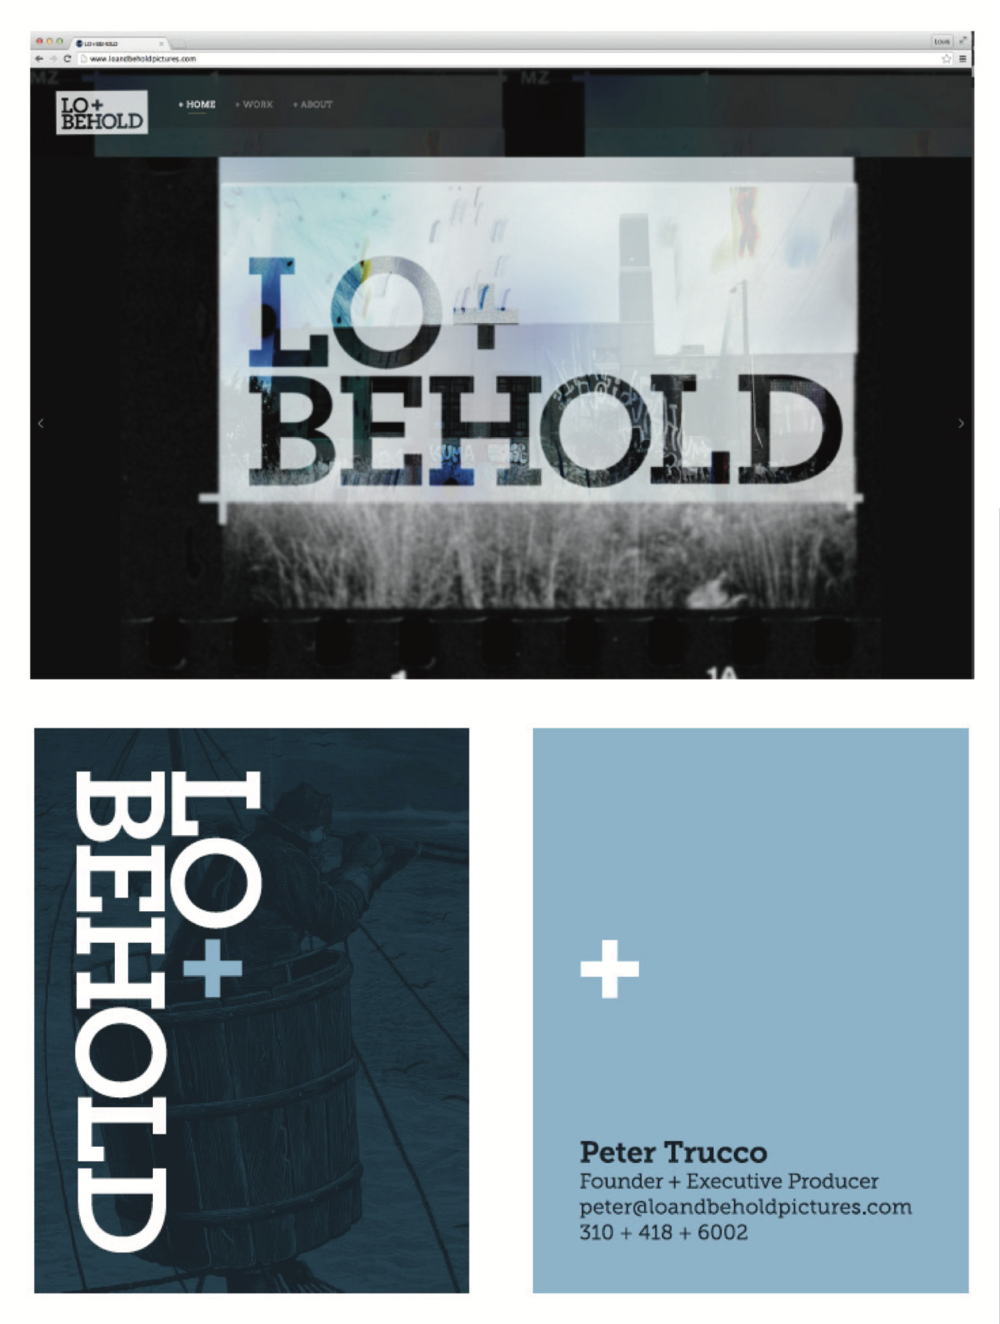 LO+BEHOLD+BRAND+PRODUCTION+EVERYBODY_TUMOLO.png